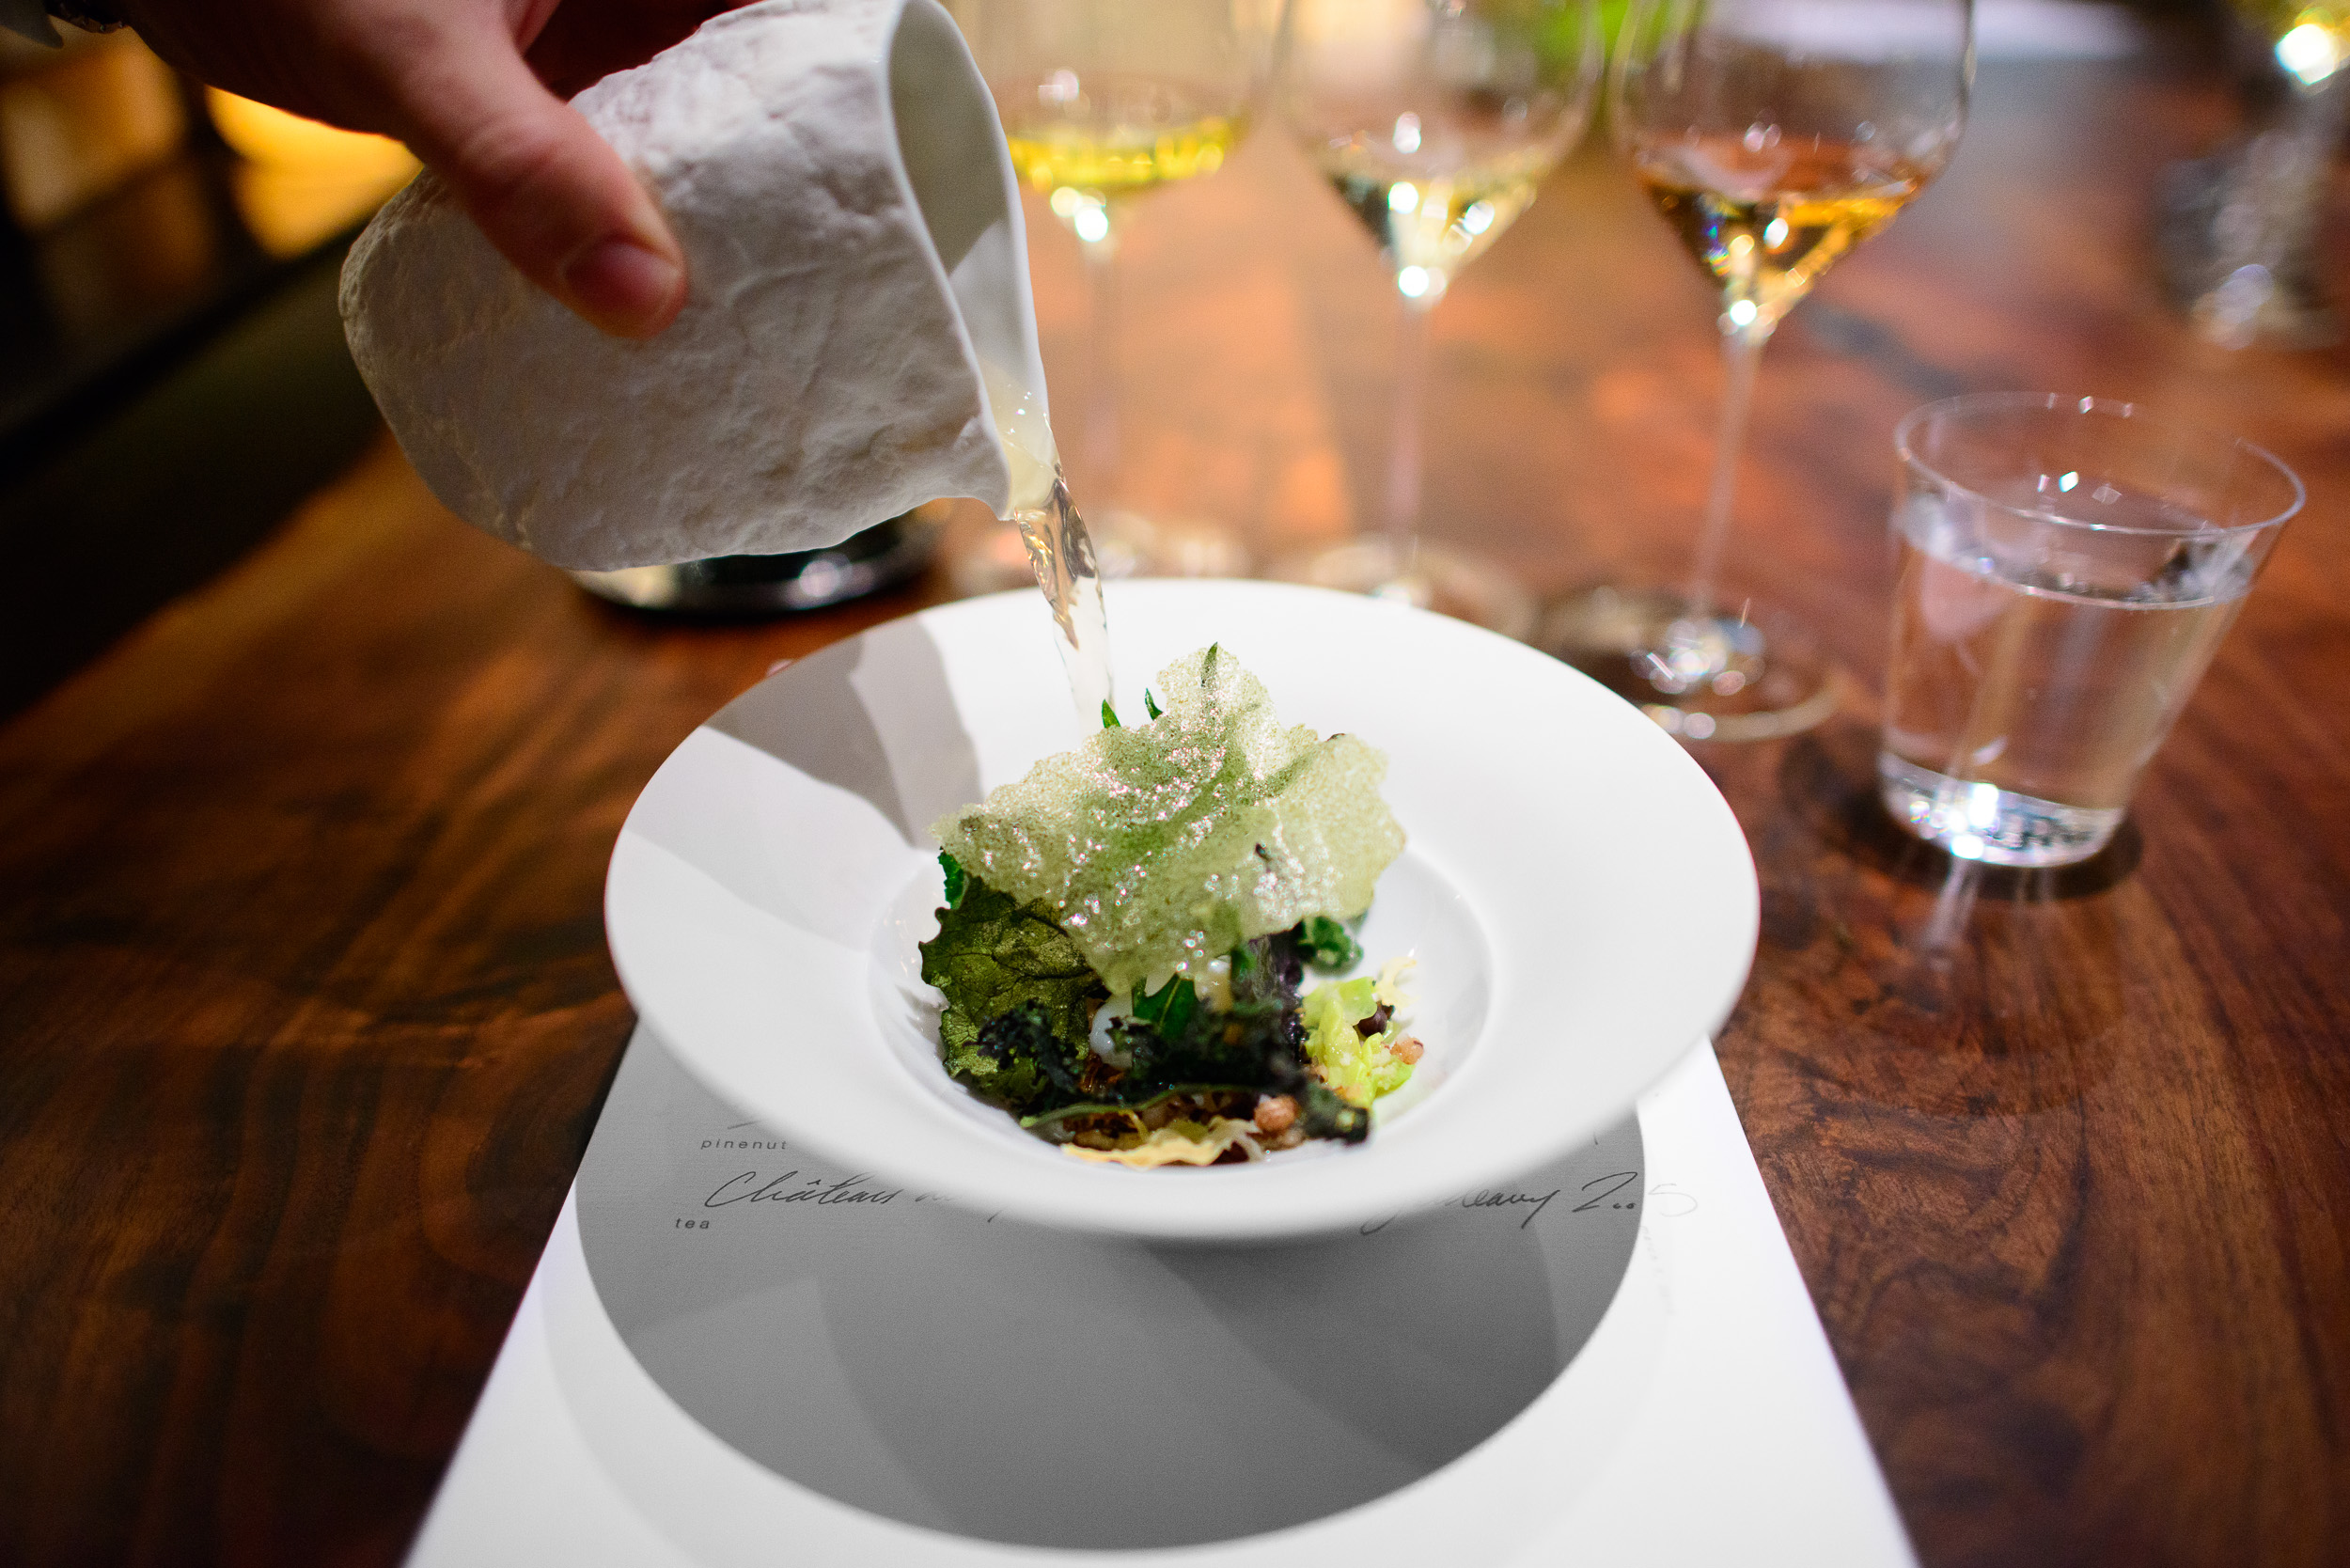 12th Course: Brassicas, each leaf dehydrated over the embers, wi